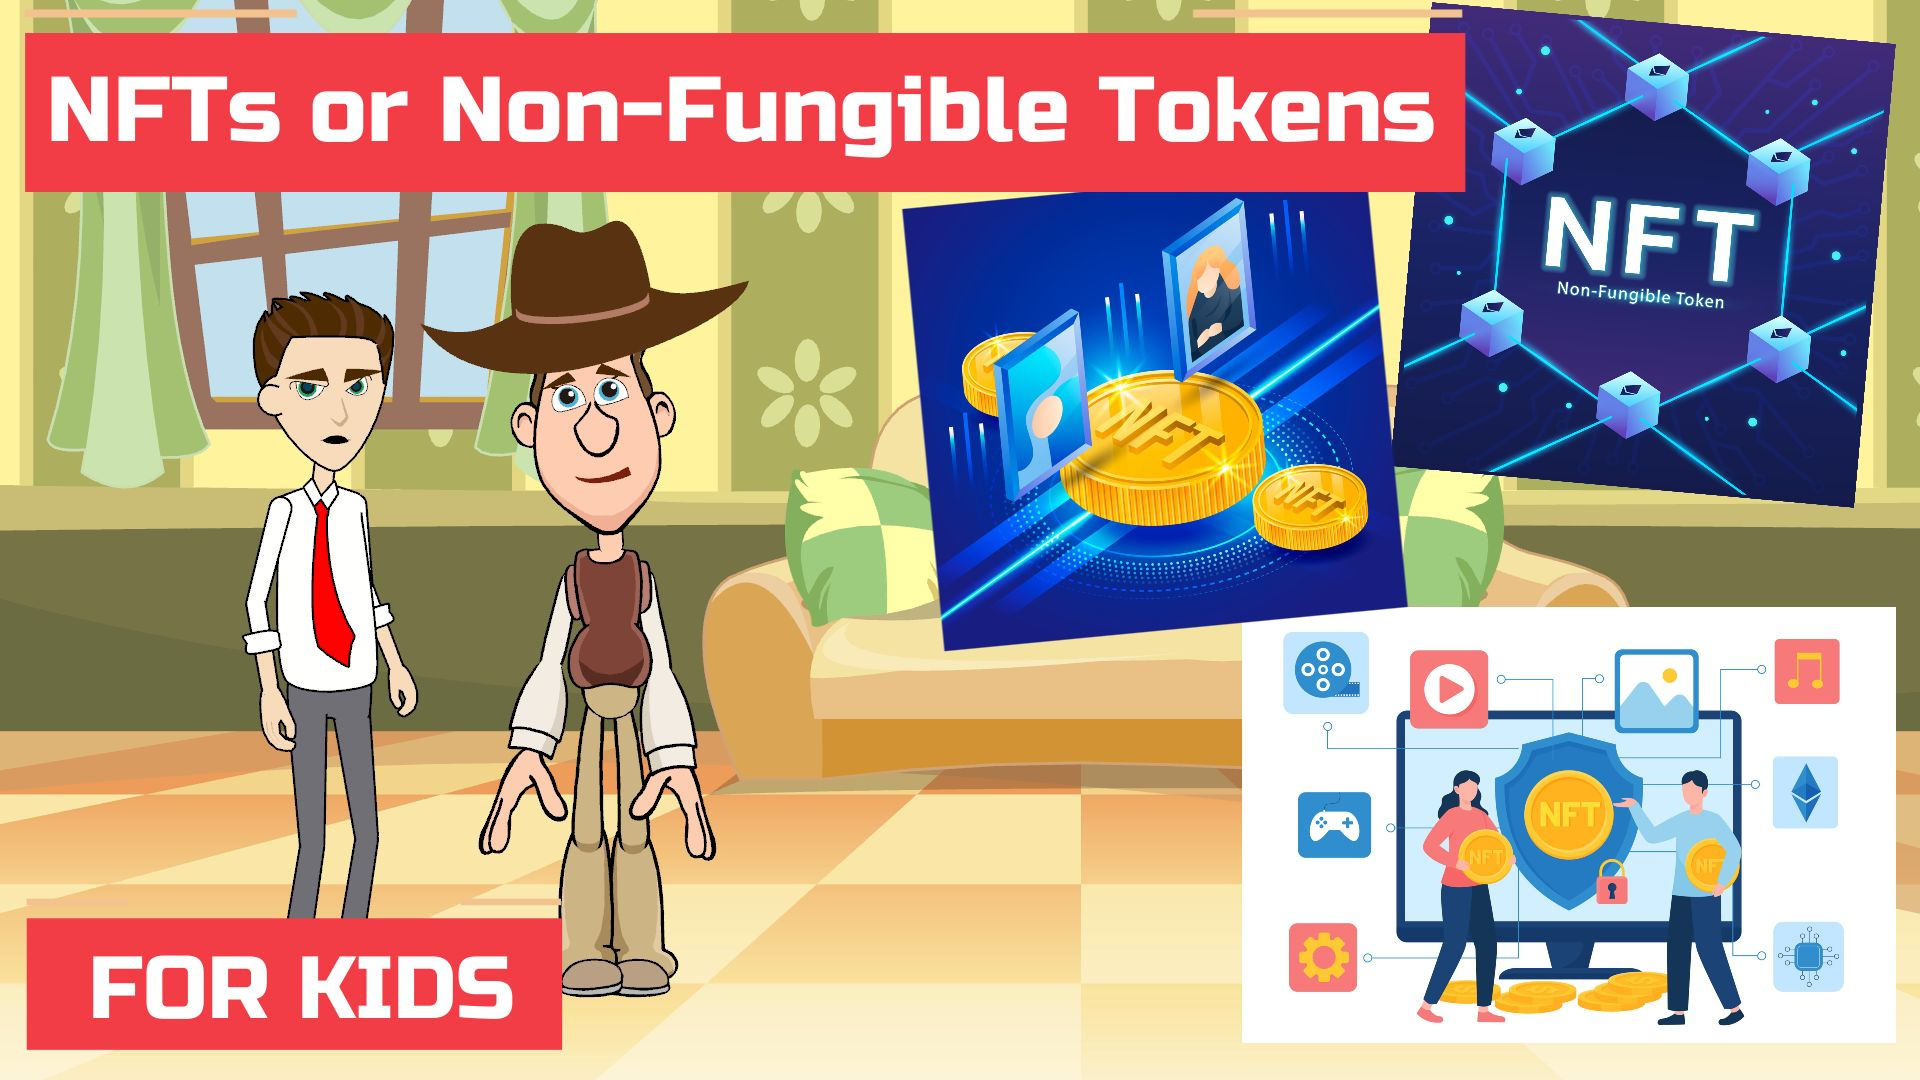 What are NFTs or Non-Fungible Tokens